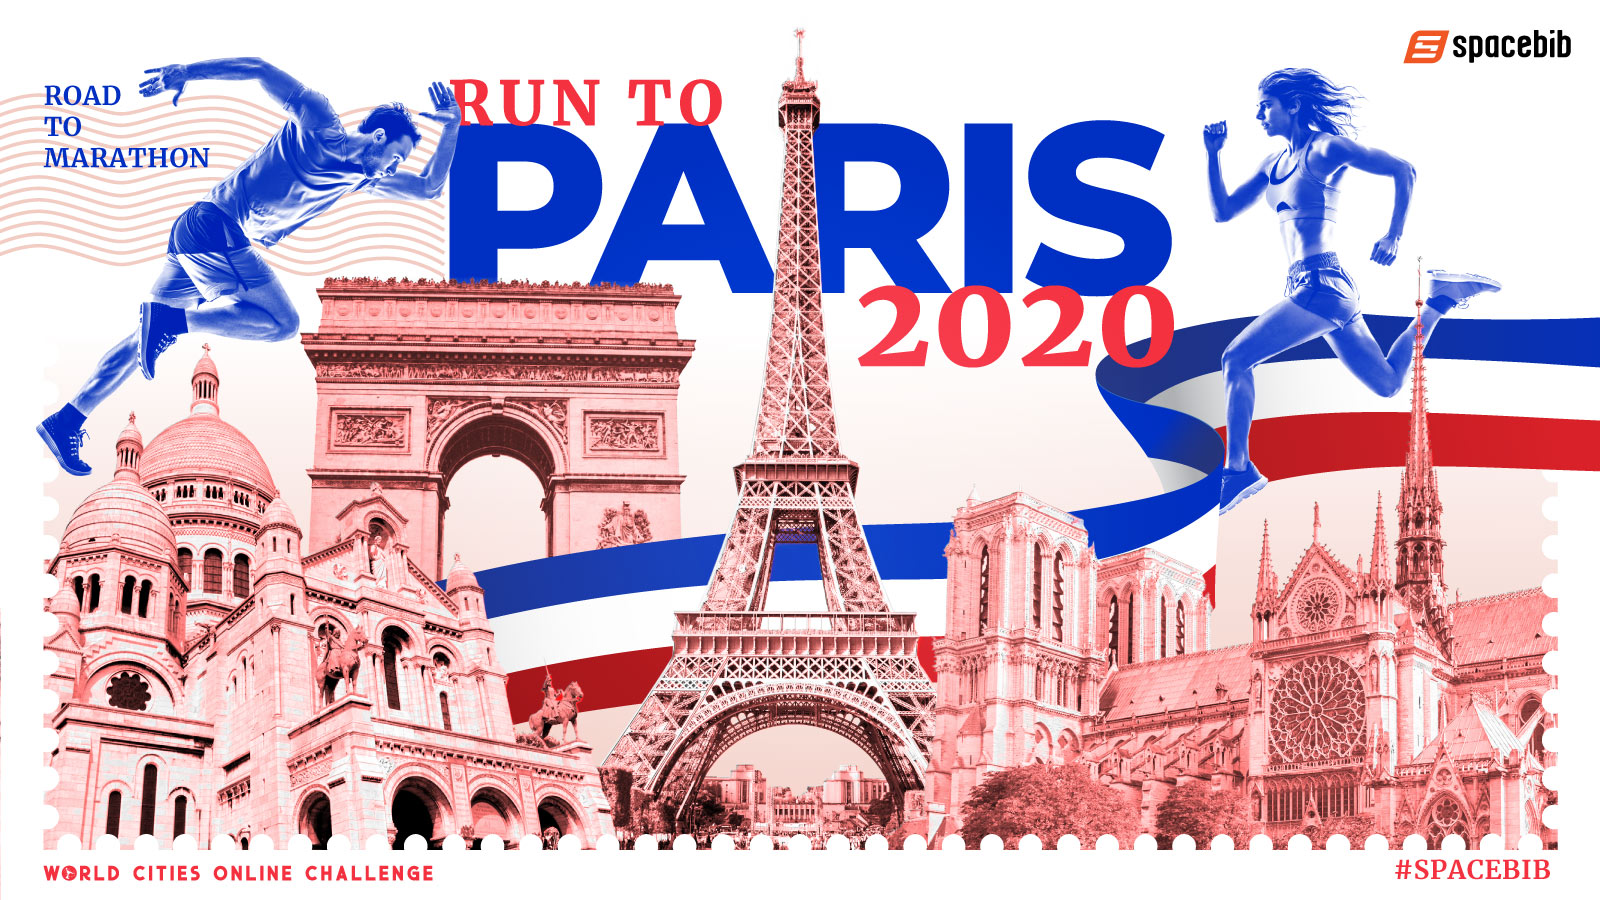 Run to Paris 2020